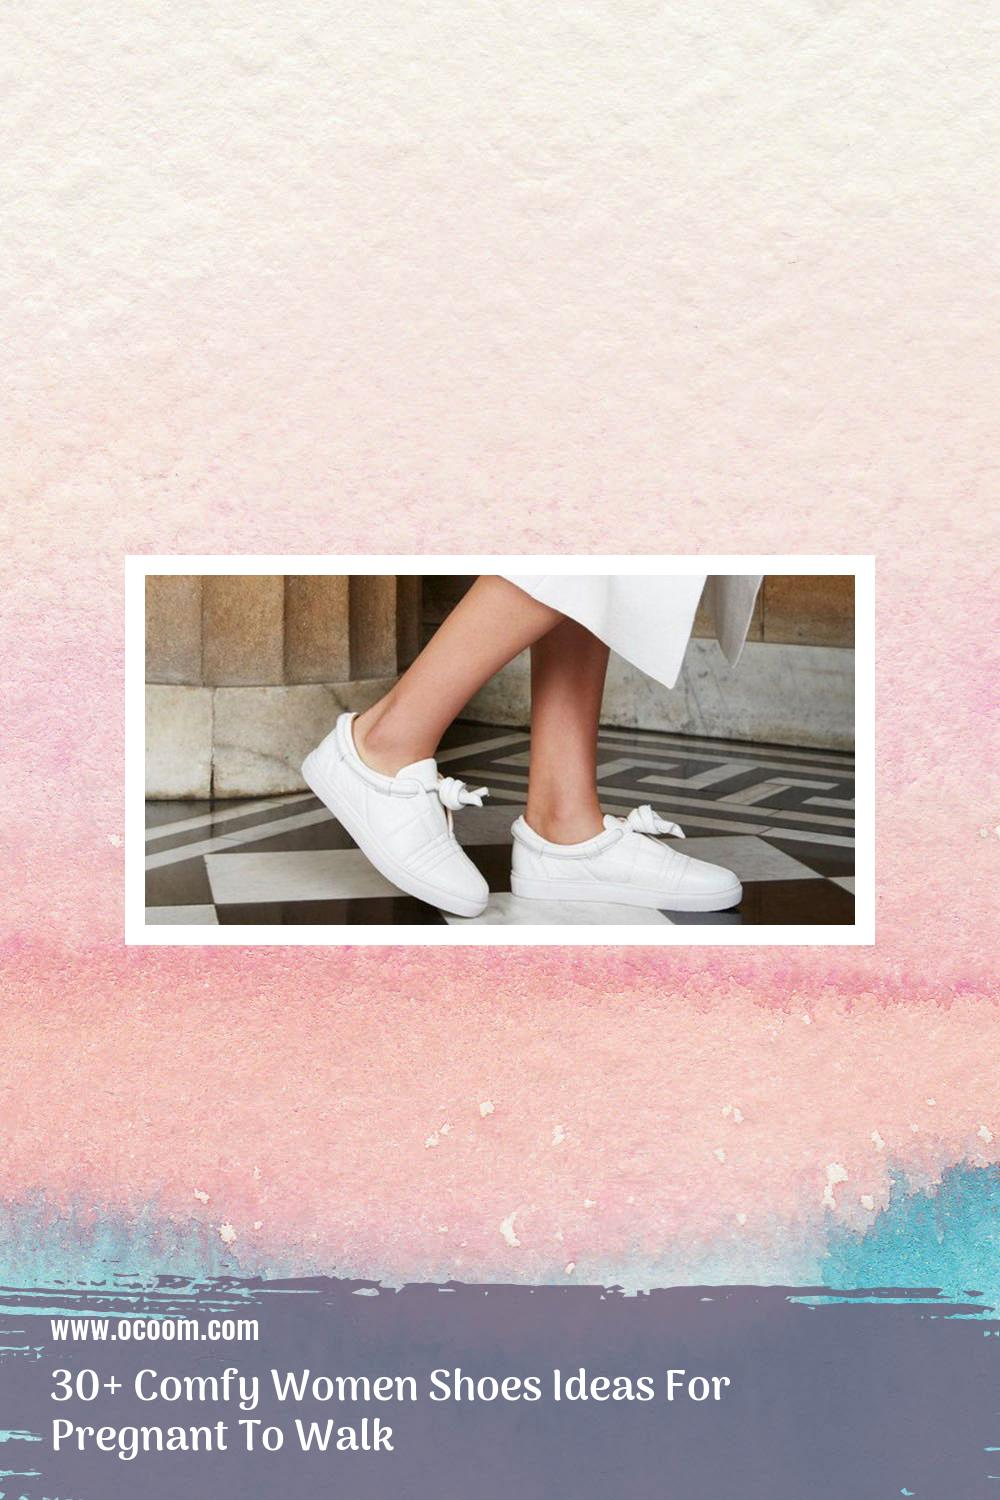 30+ Comfy Women Shoes Ideas For Pregnant To Walk 11